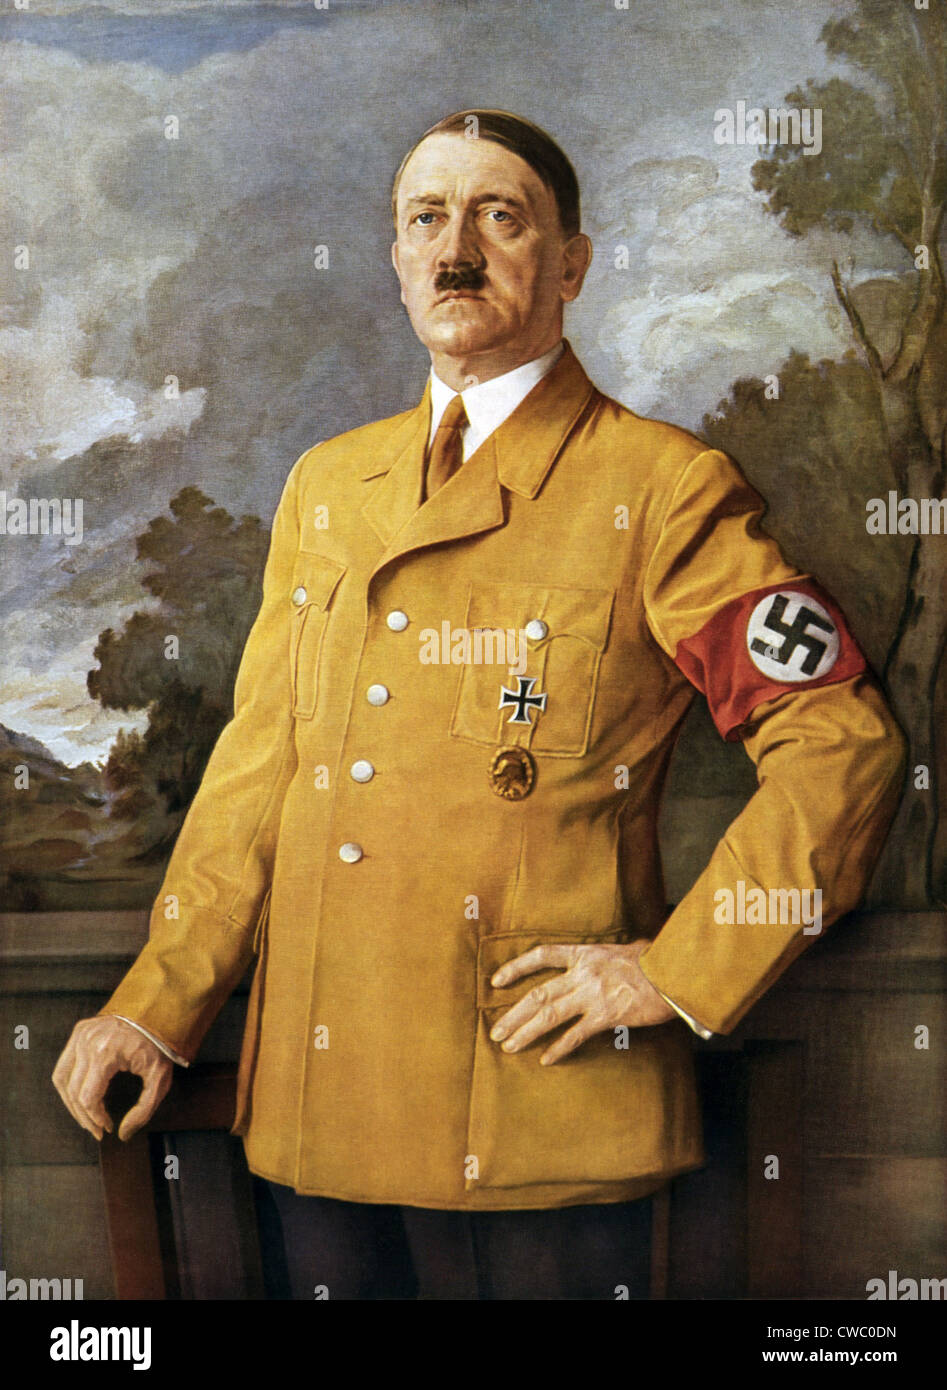 OUR FUHRER, a portrait of Adolf Hitler by Heinrich Knirr. Ca. 1940. - Stock Image